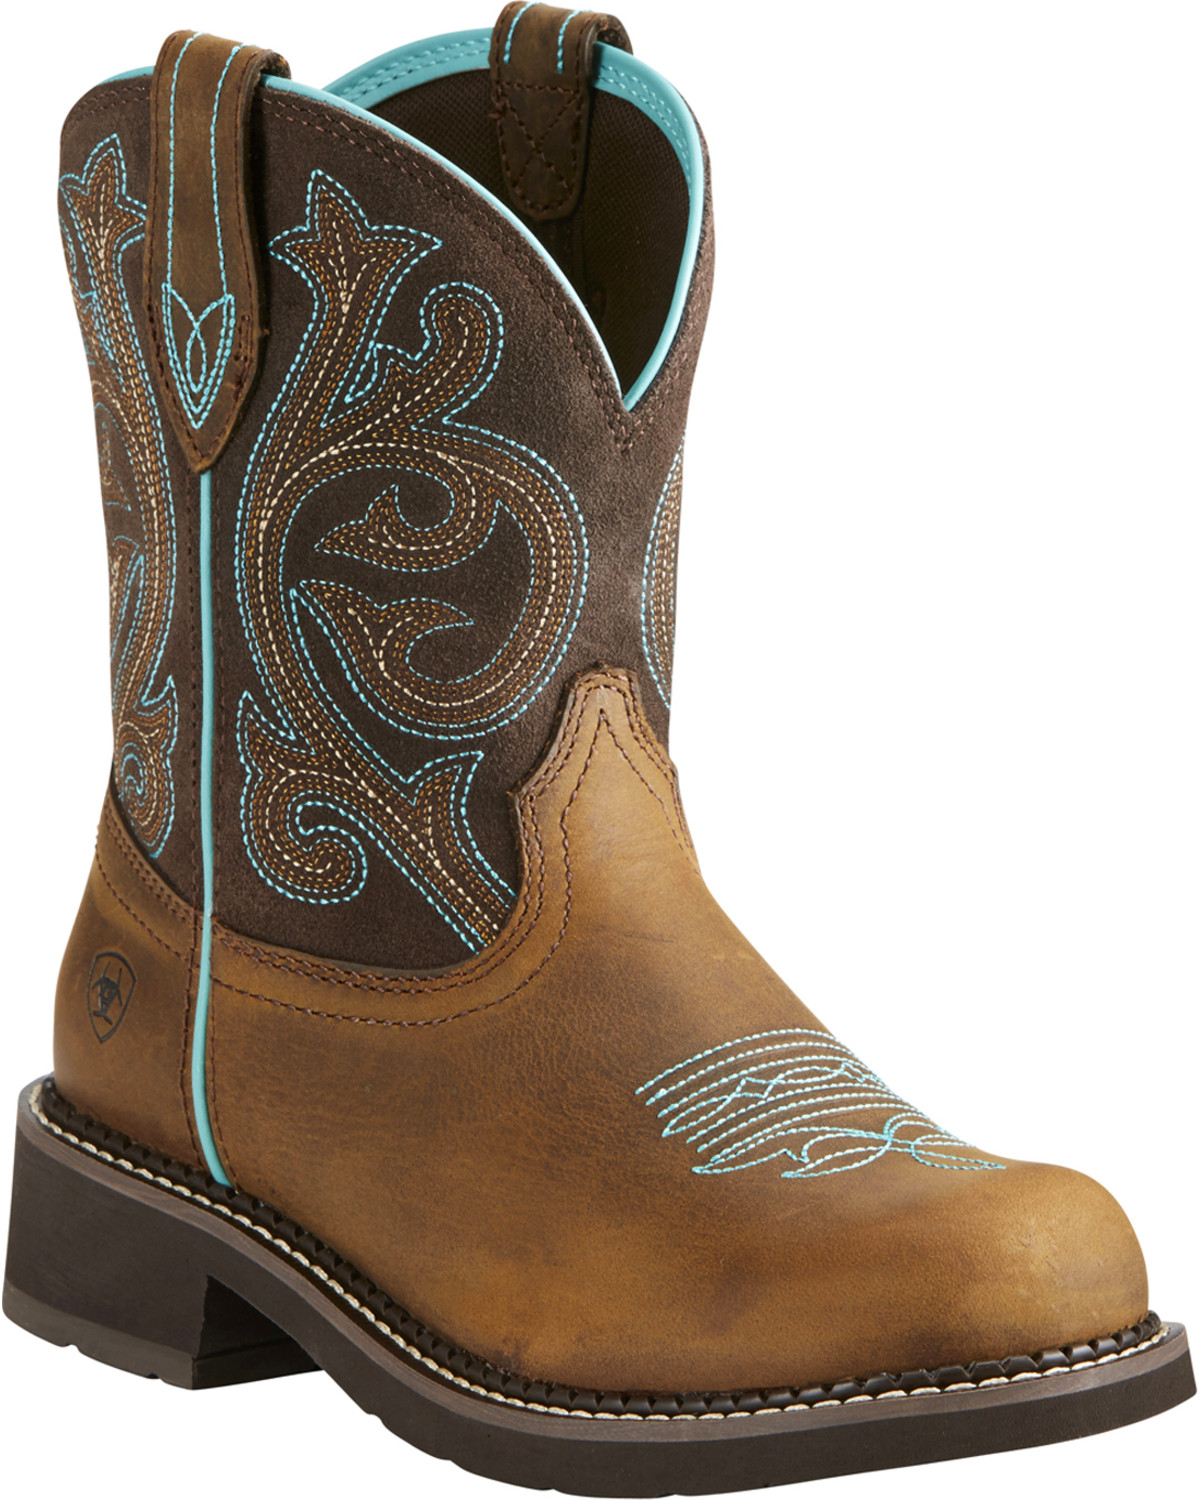 cb0654e4a2381 Ariat Fatbaby Women's Heritage Brown/Turquoise Cowgirl Boots - Round Toe